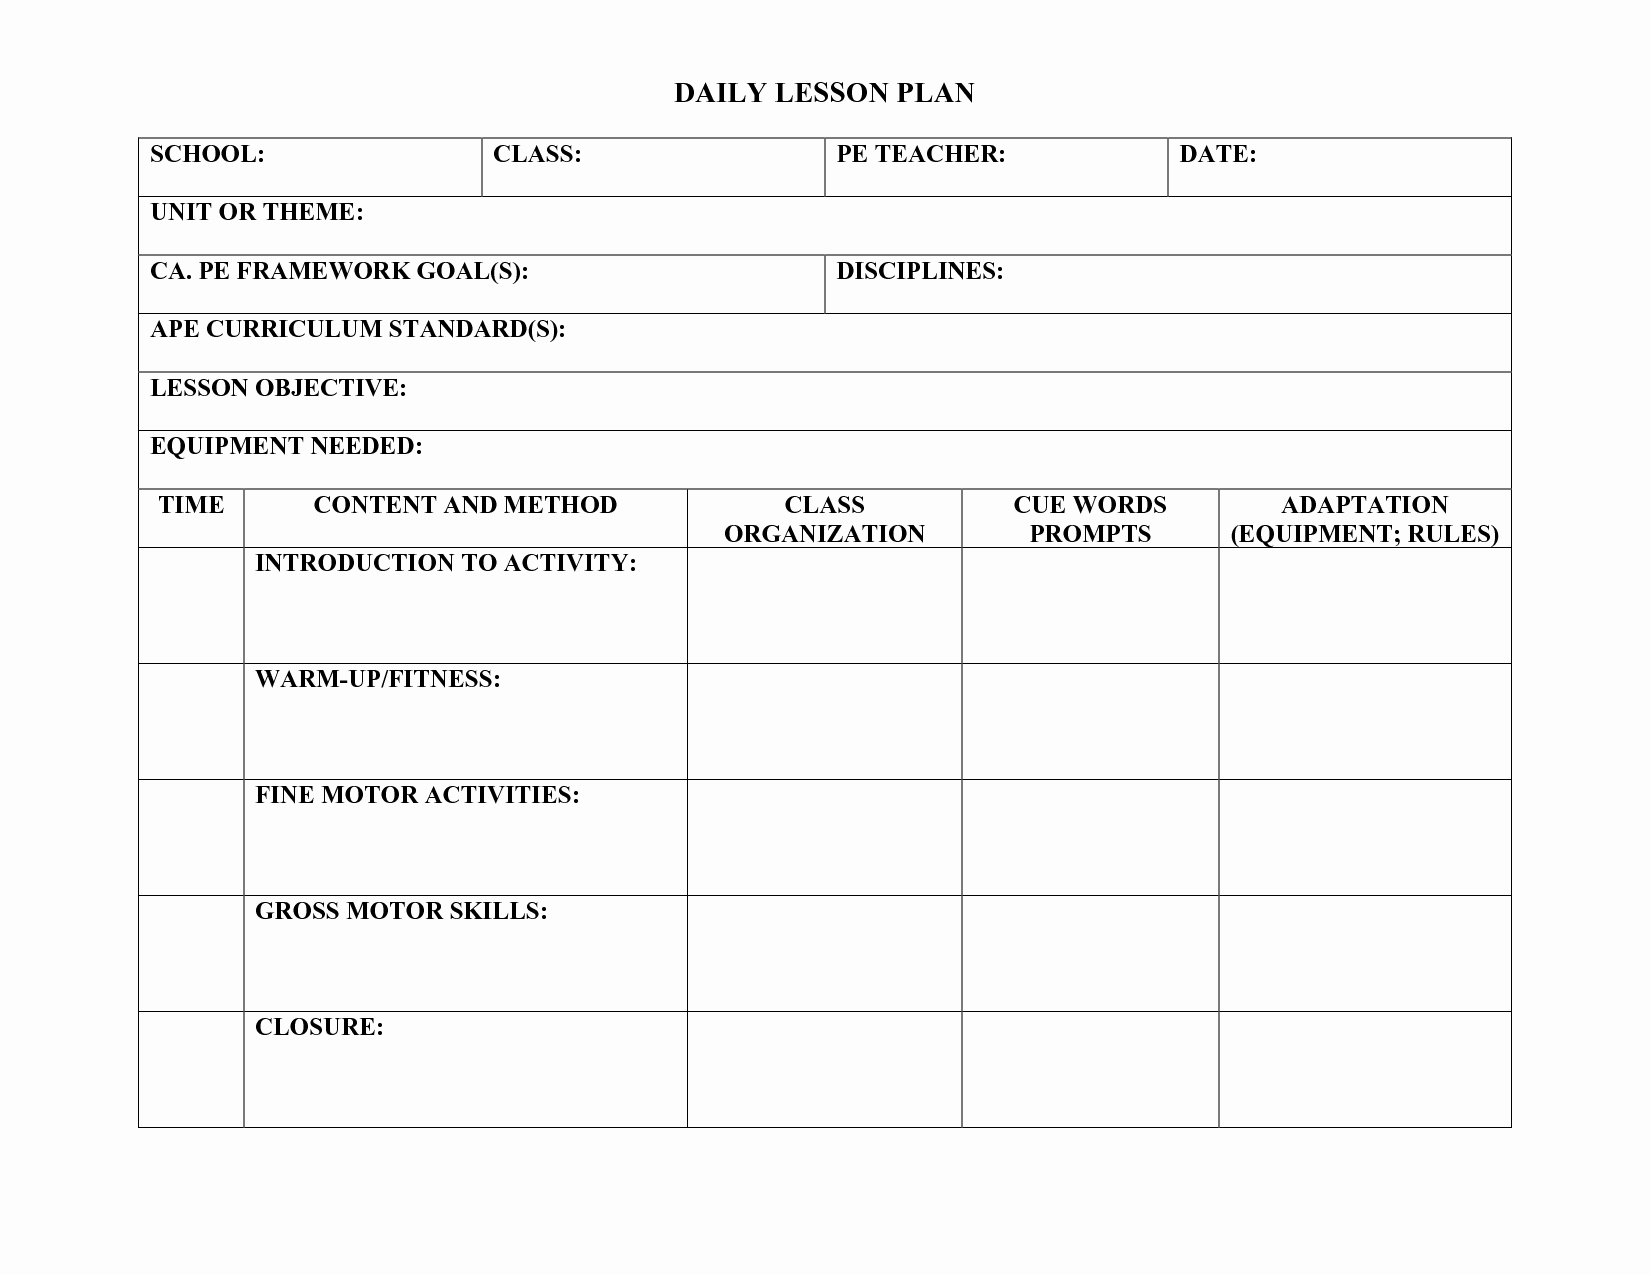 Pe Lesson Plan Template New Pe Lesson Plan Template Teachers Pinterest